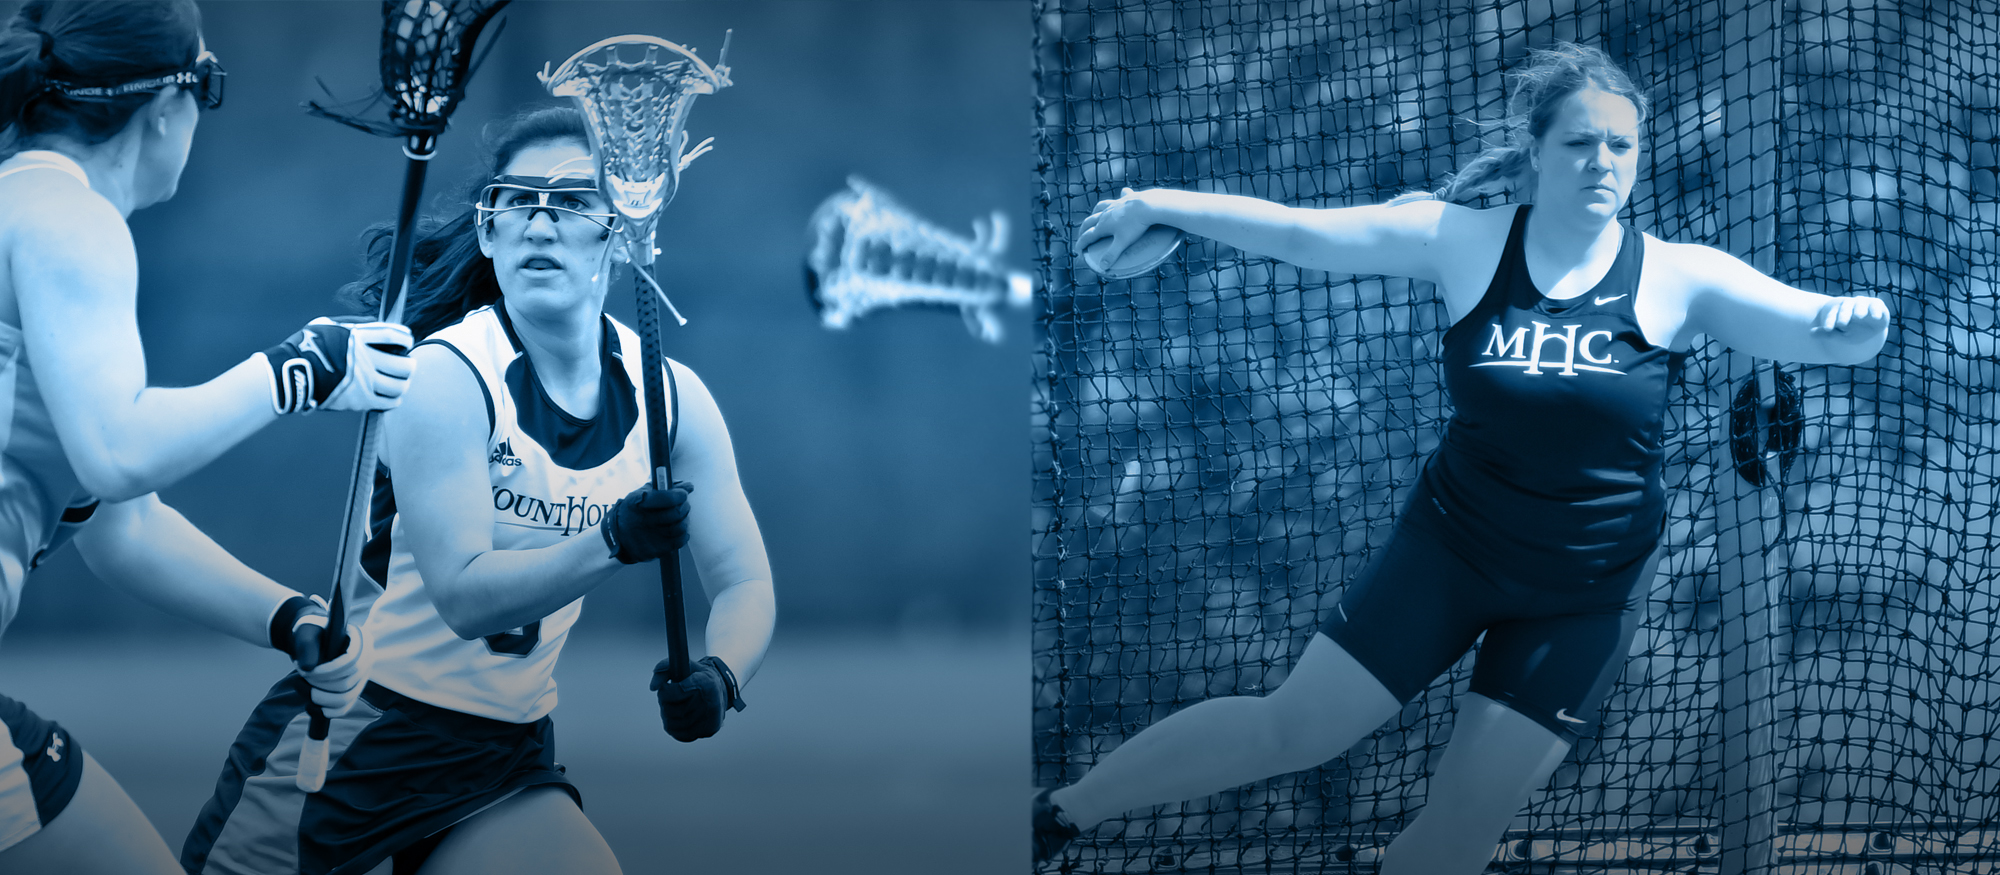 Image featuring Lacrosse senior Kaitlin Braz and track & field junior Julia Hecking.